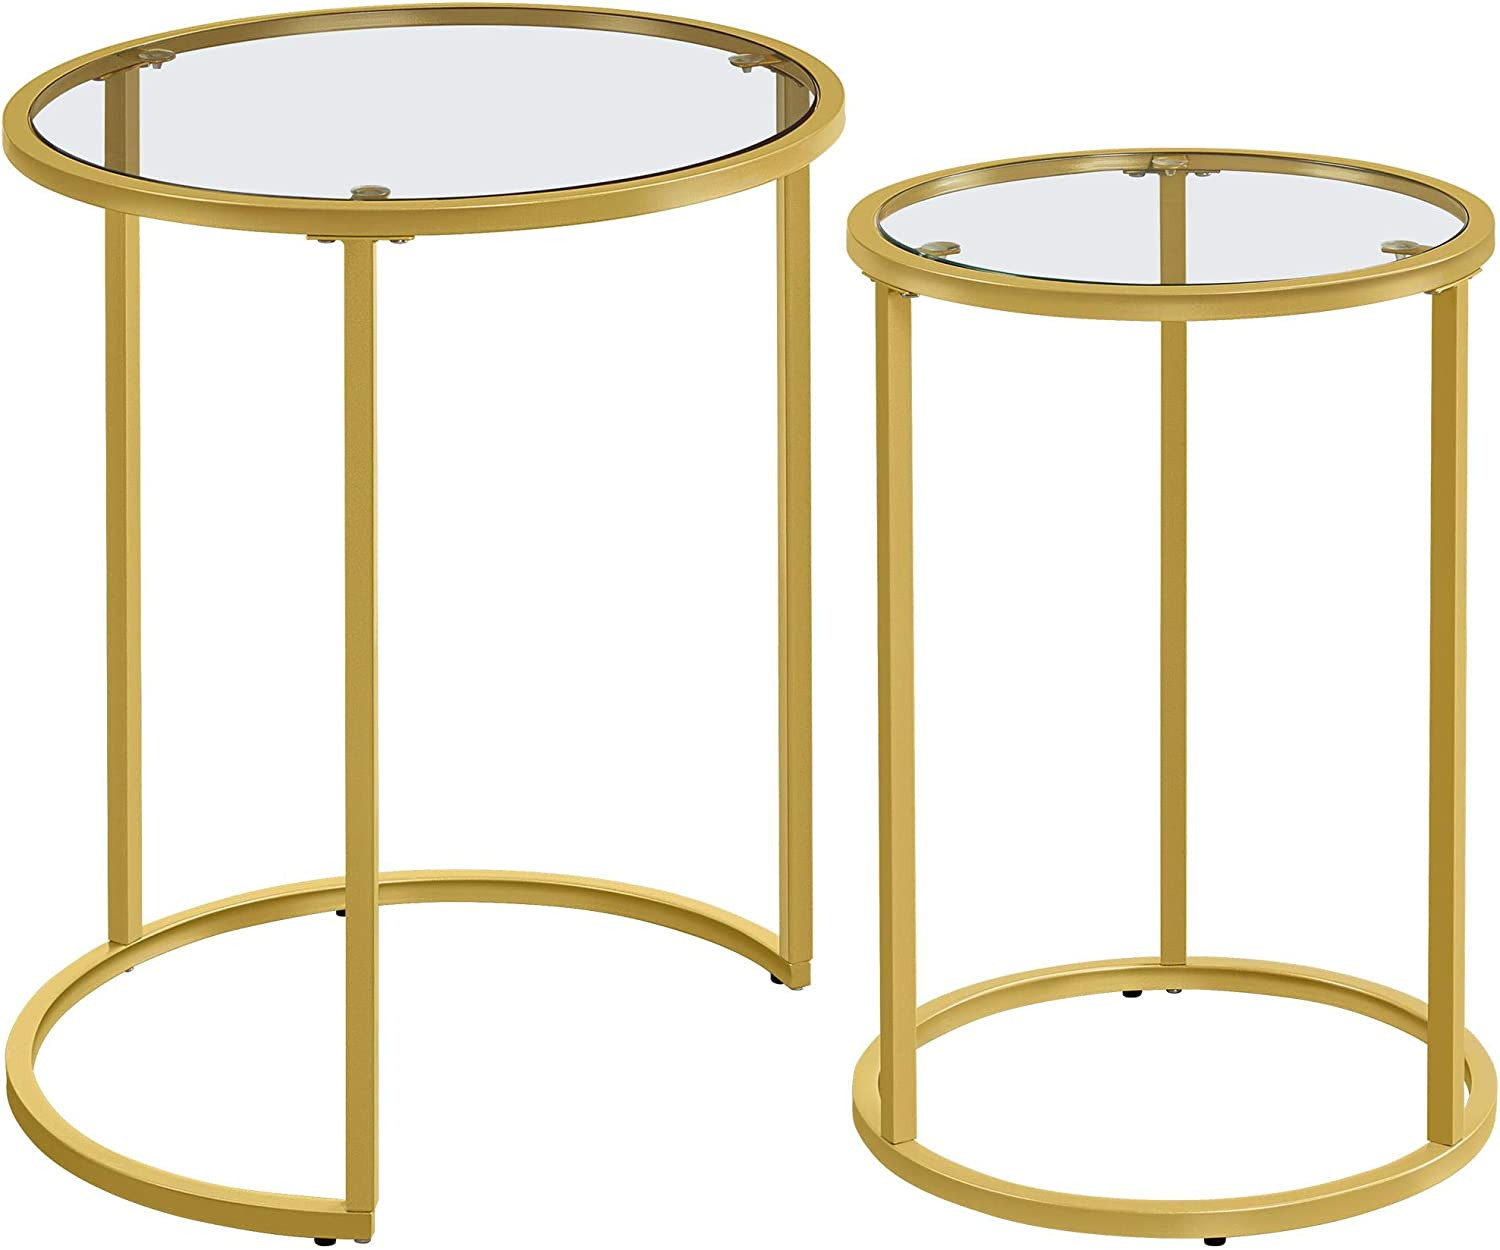 Iron Frame Bedroom Office Porch,Small Space,Gold YAHEETECH Nesting Table Set of 2,Coffee Tables Round Accent Table Set w//Glass Top Protective Foot Pads for Dining Room,Living Room